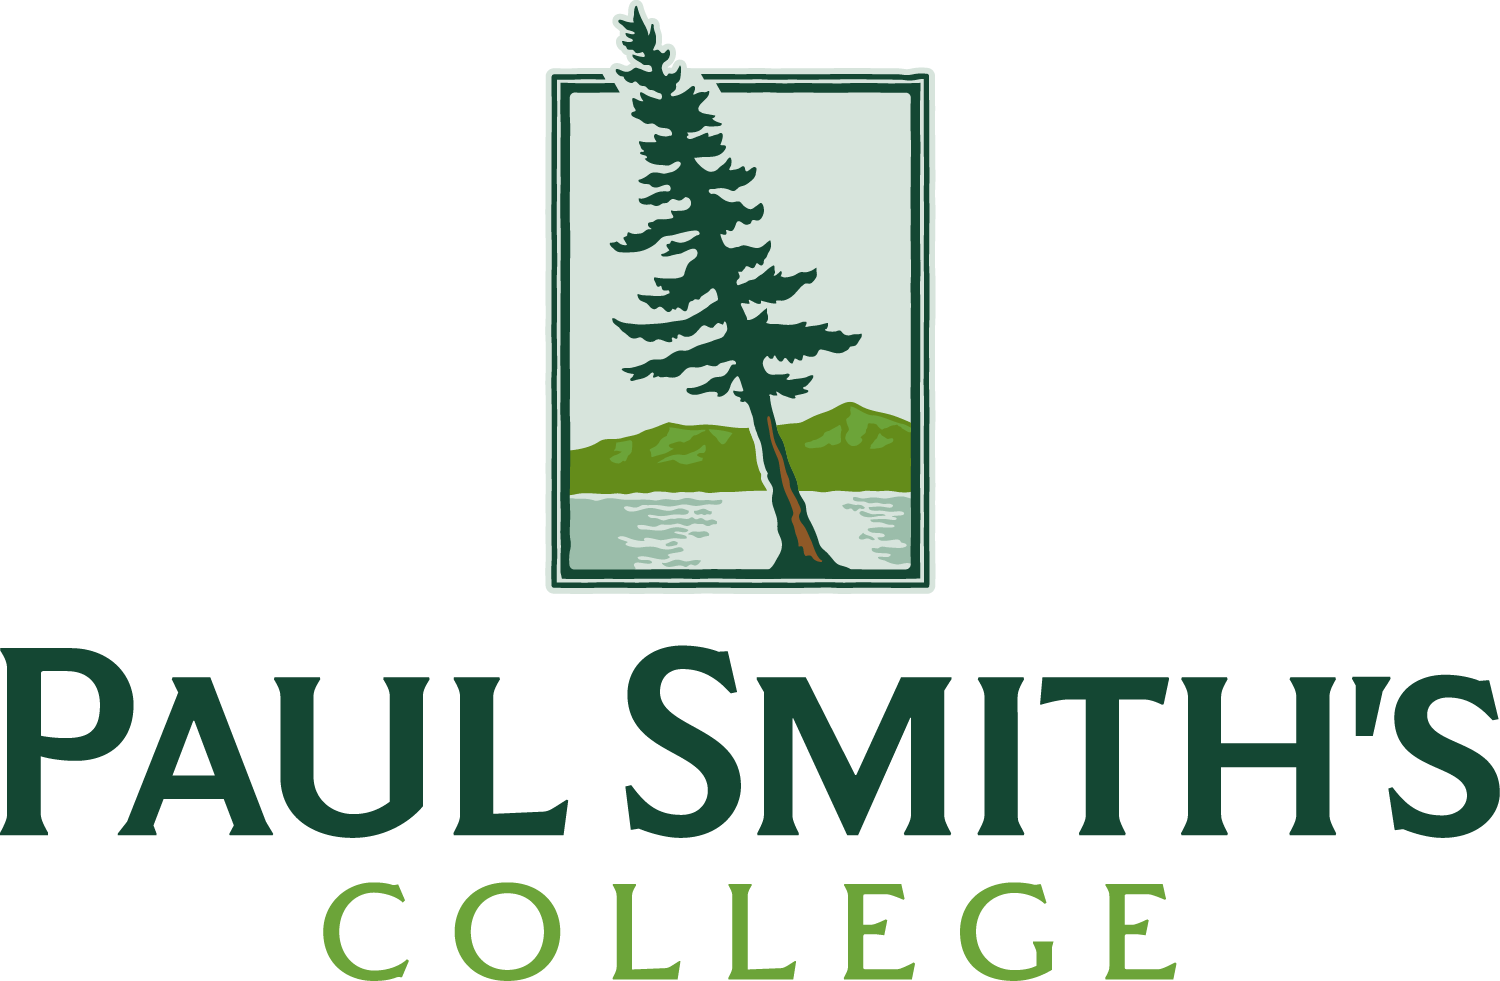 Paul Smith College logo